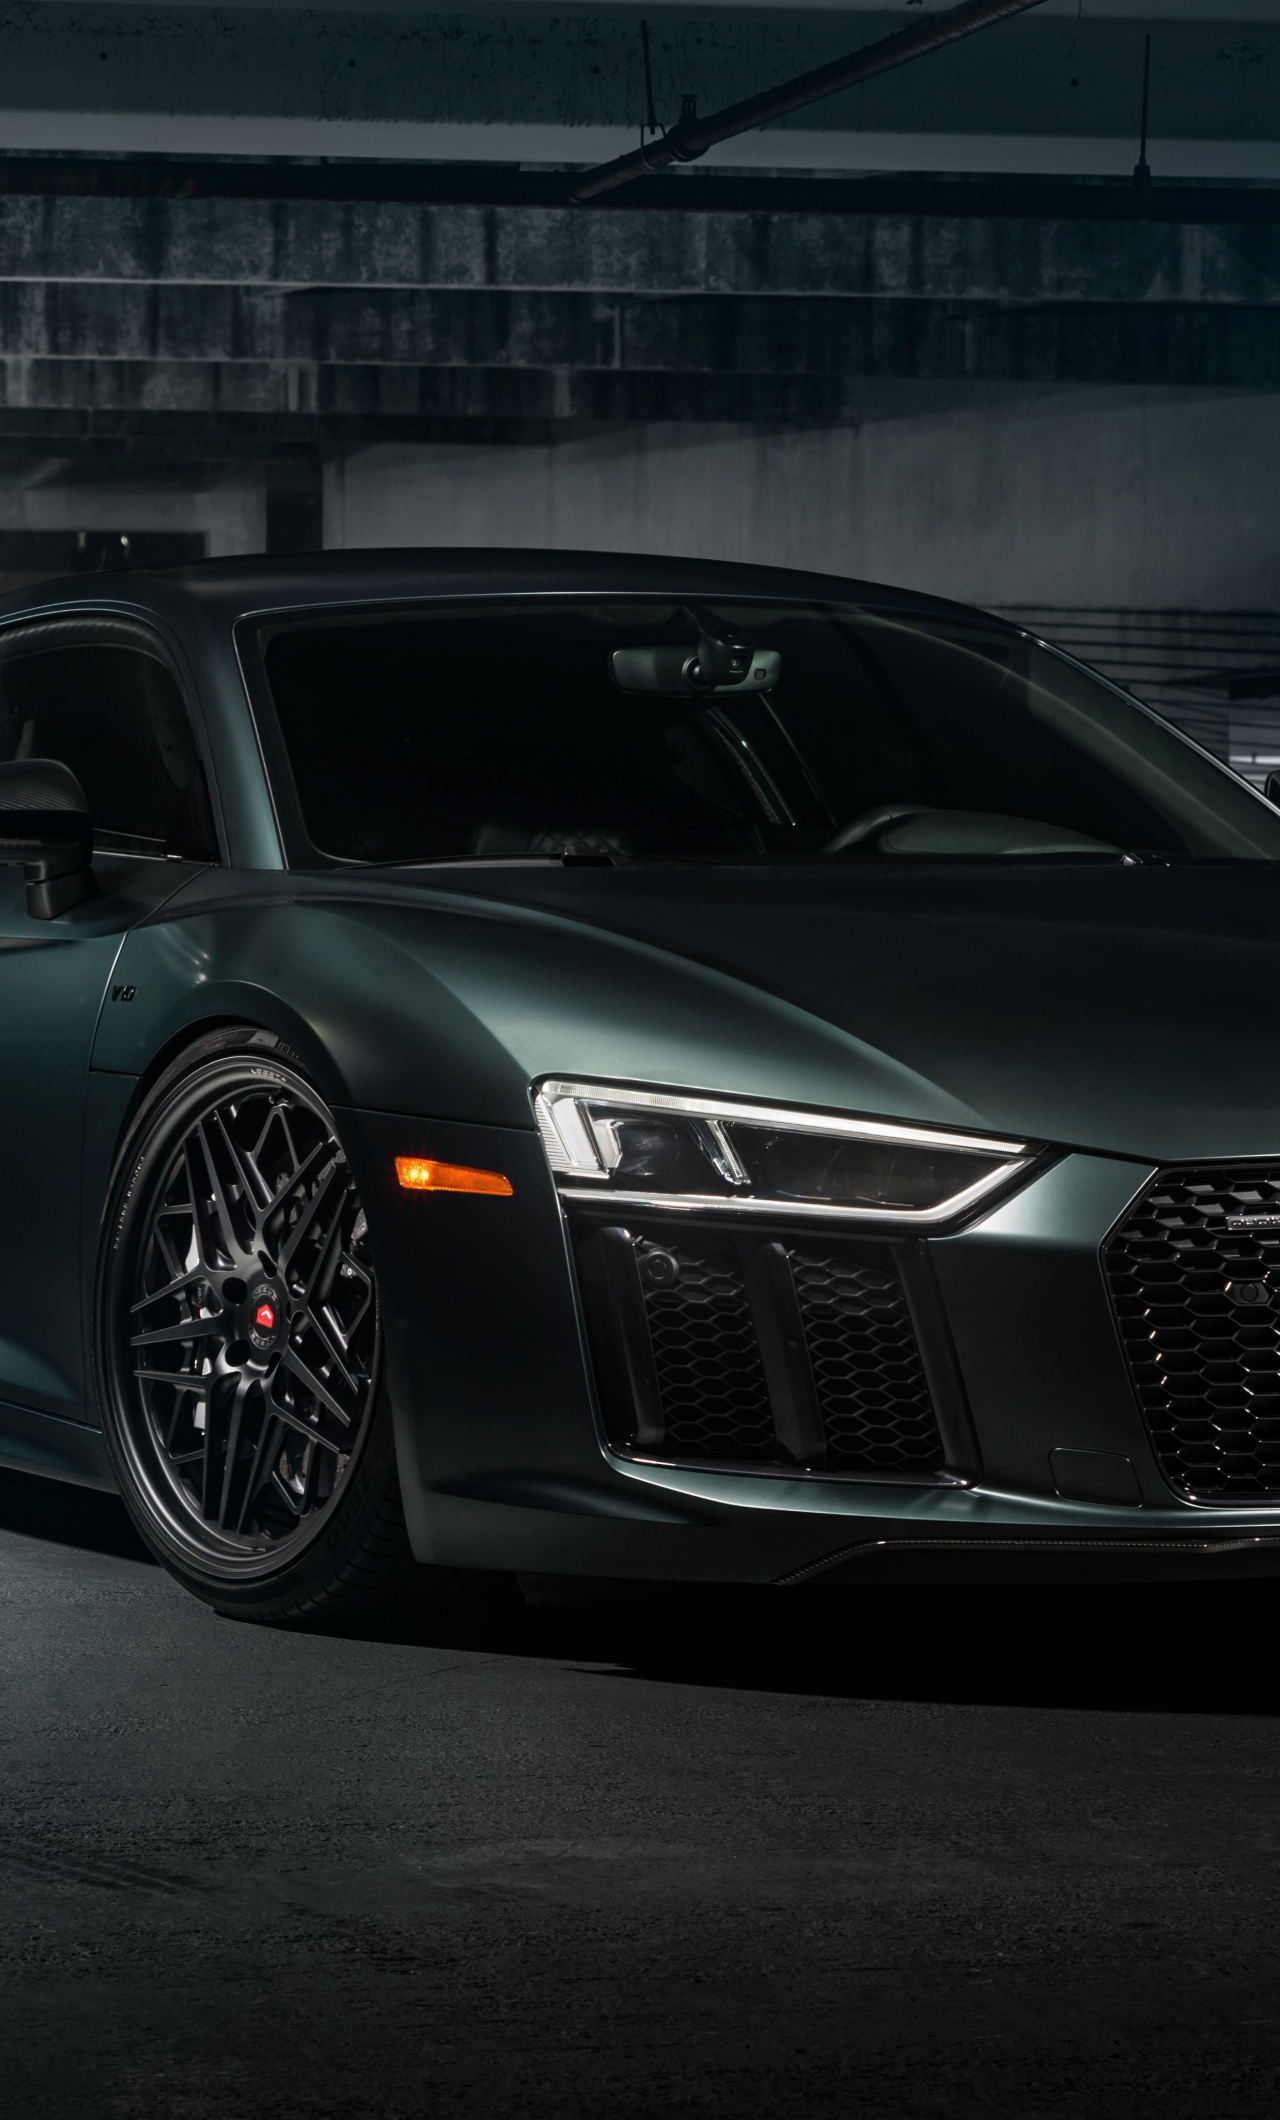 Download 1280x2120 Wallpaper Front Sprots Car Audi R8 Iphone 6